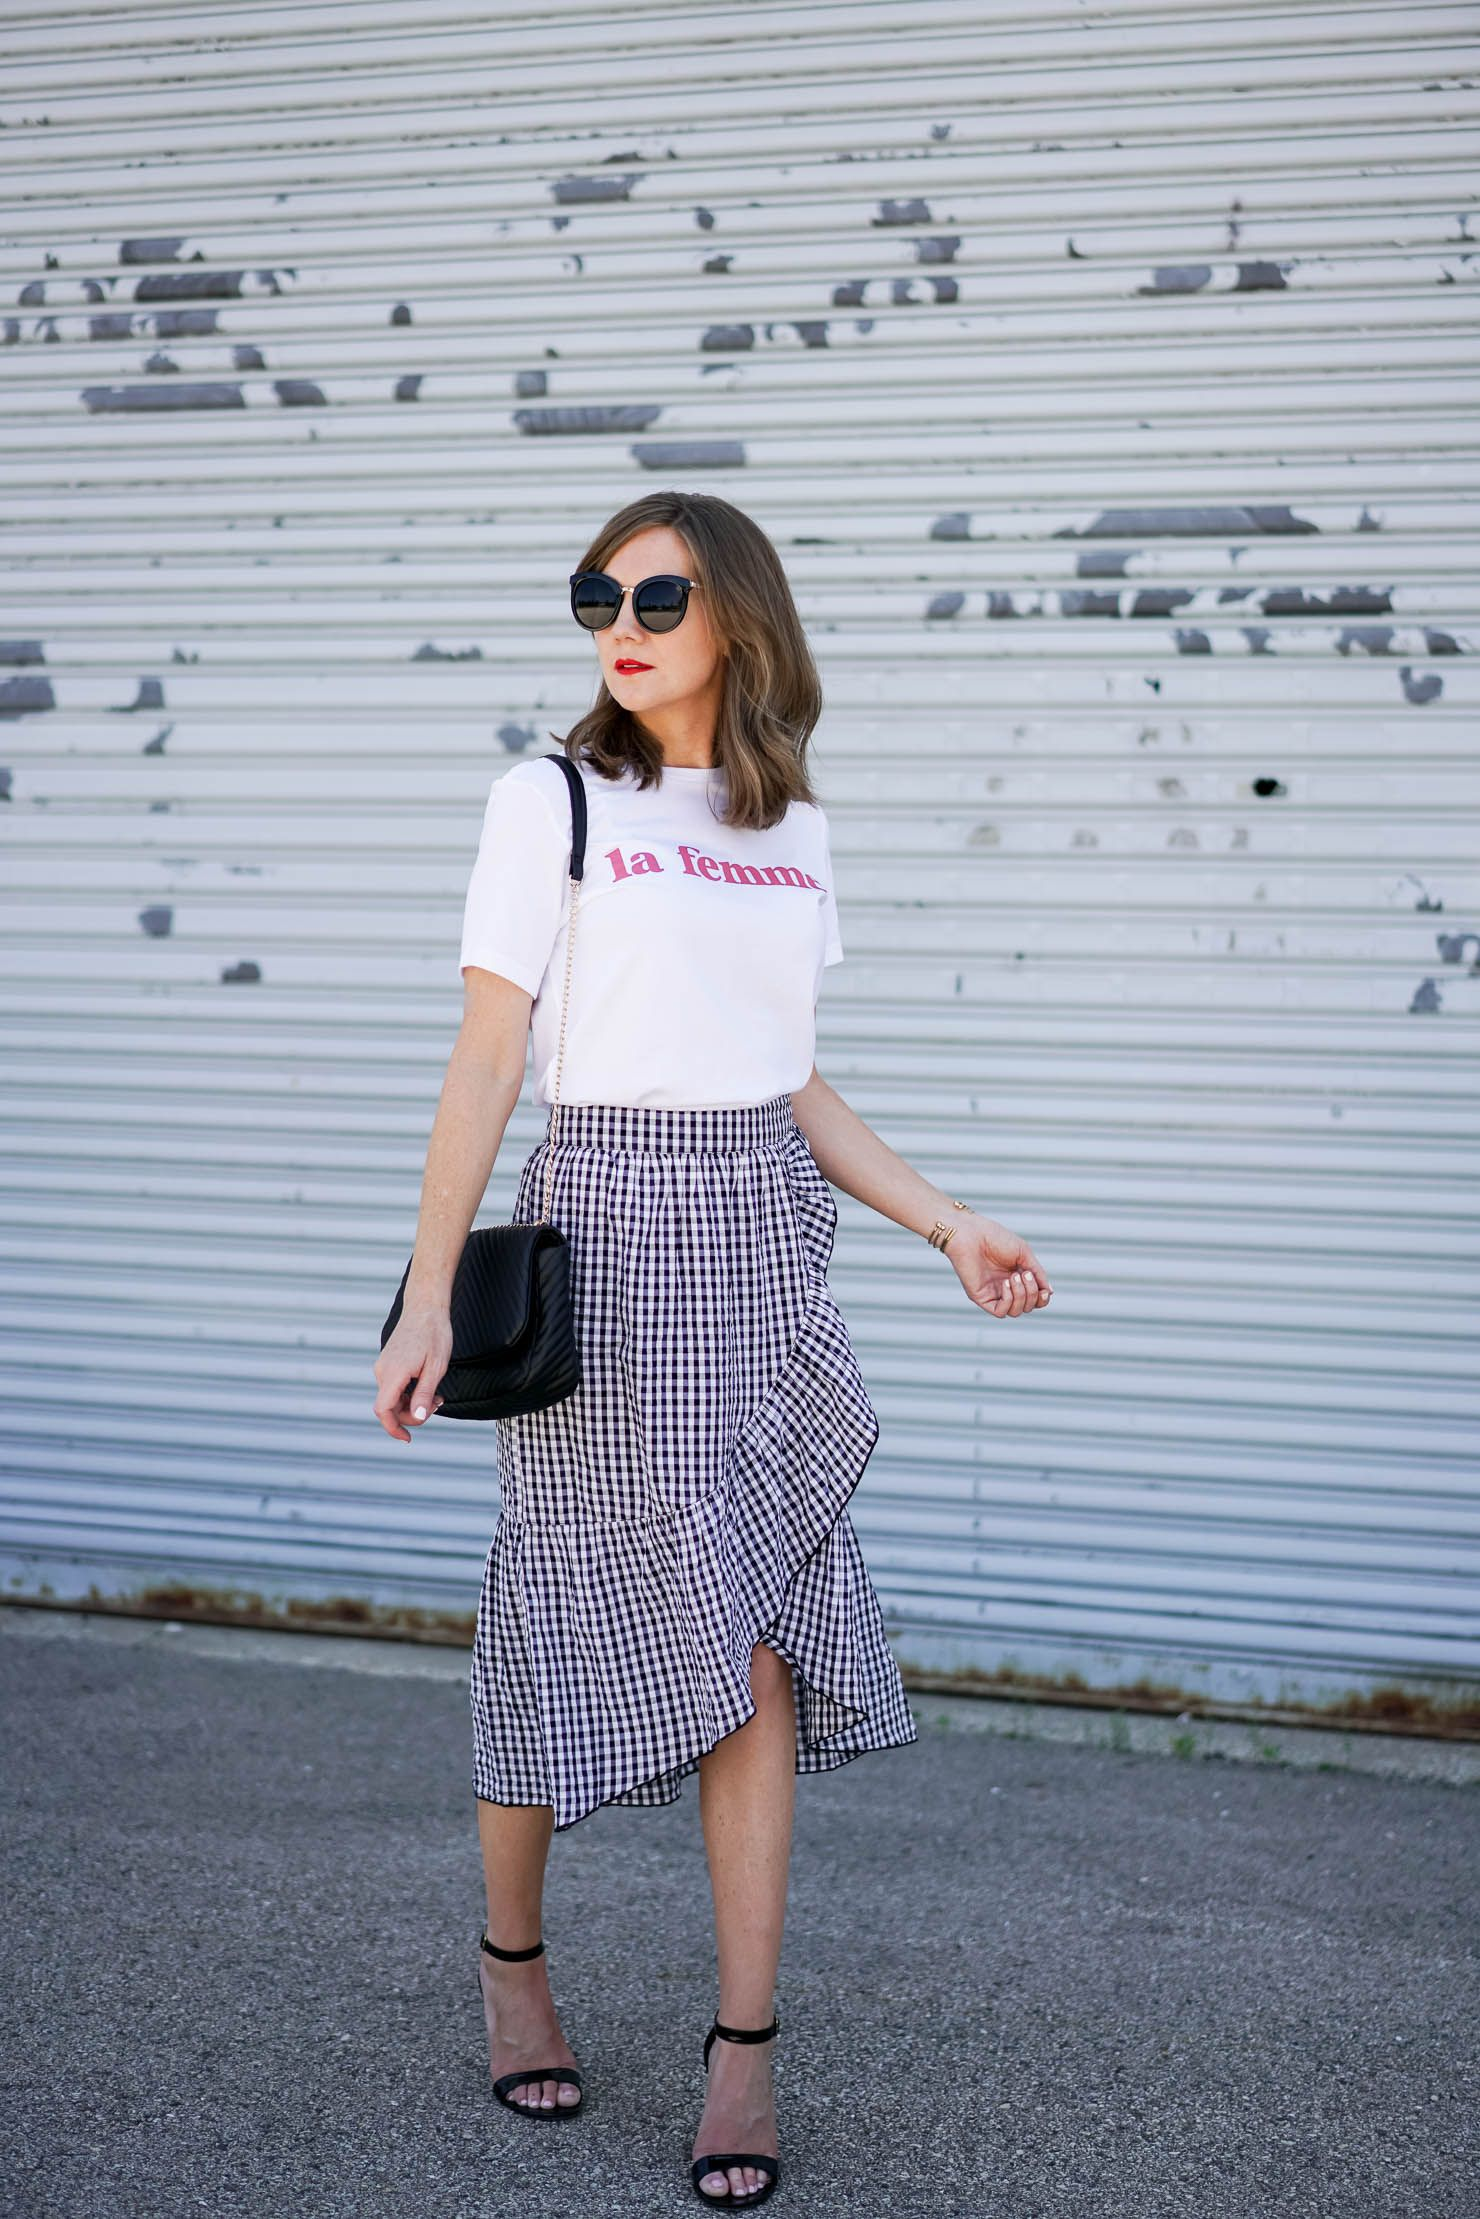 10fb6b7a21 Parisian chic, gingham ruffled midi skirt, la femme tee easy, parisian  inspired outfit, how to dress like a french girl, black and white gingham  midi skirt